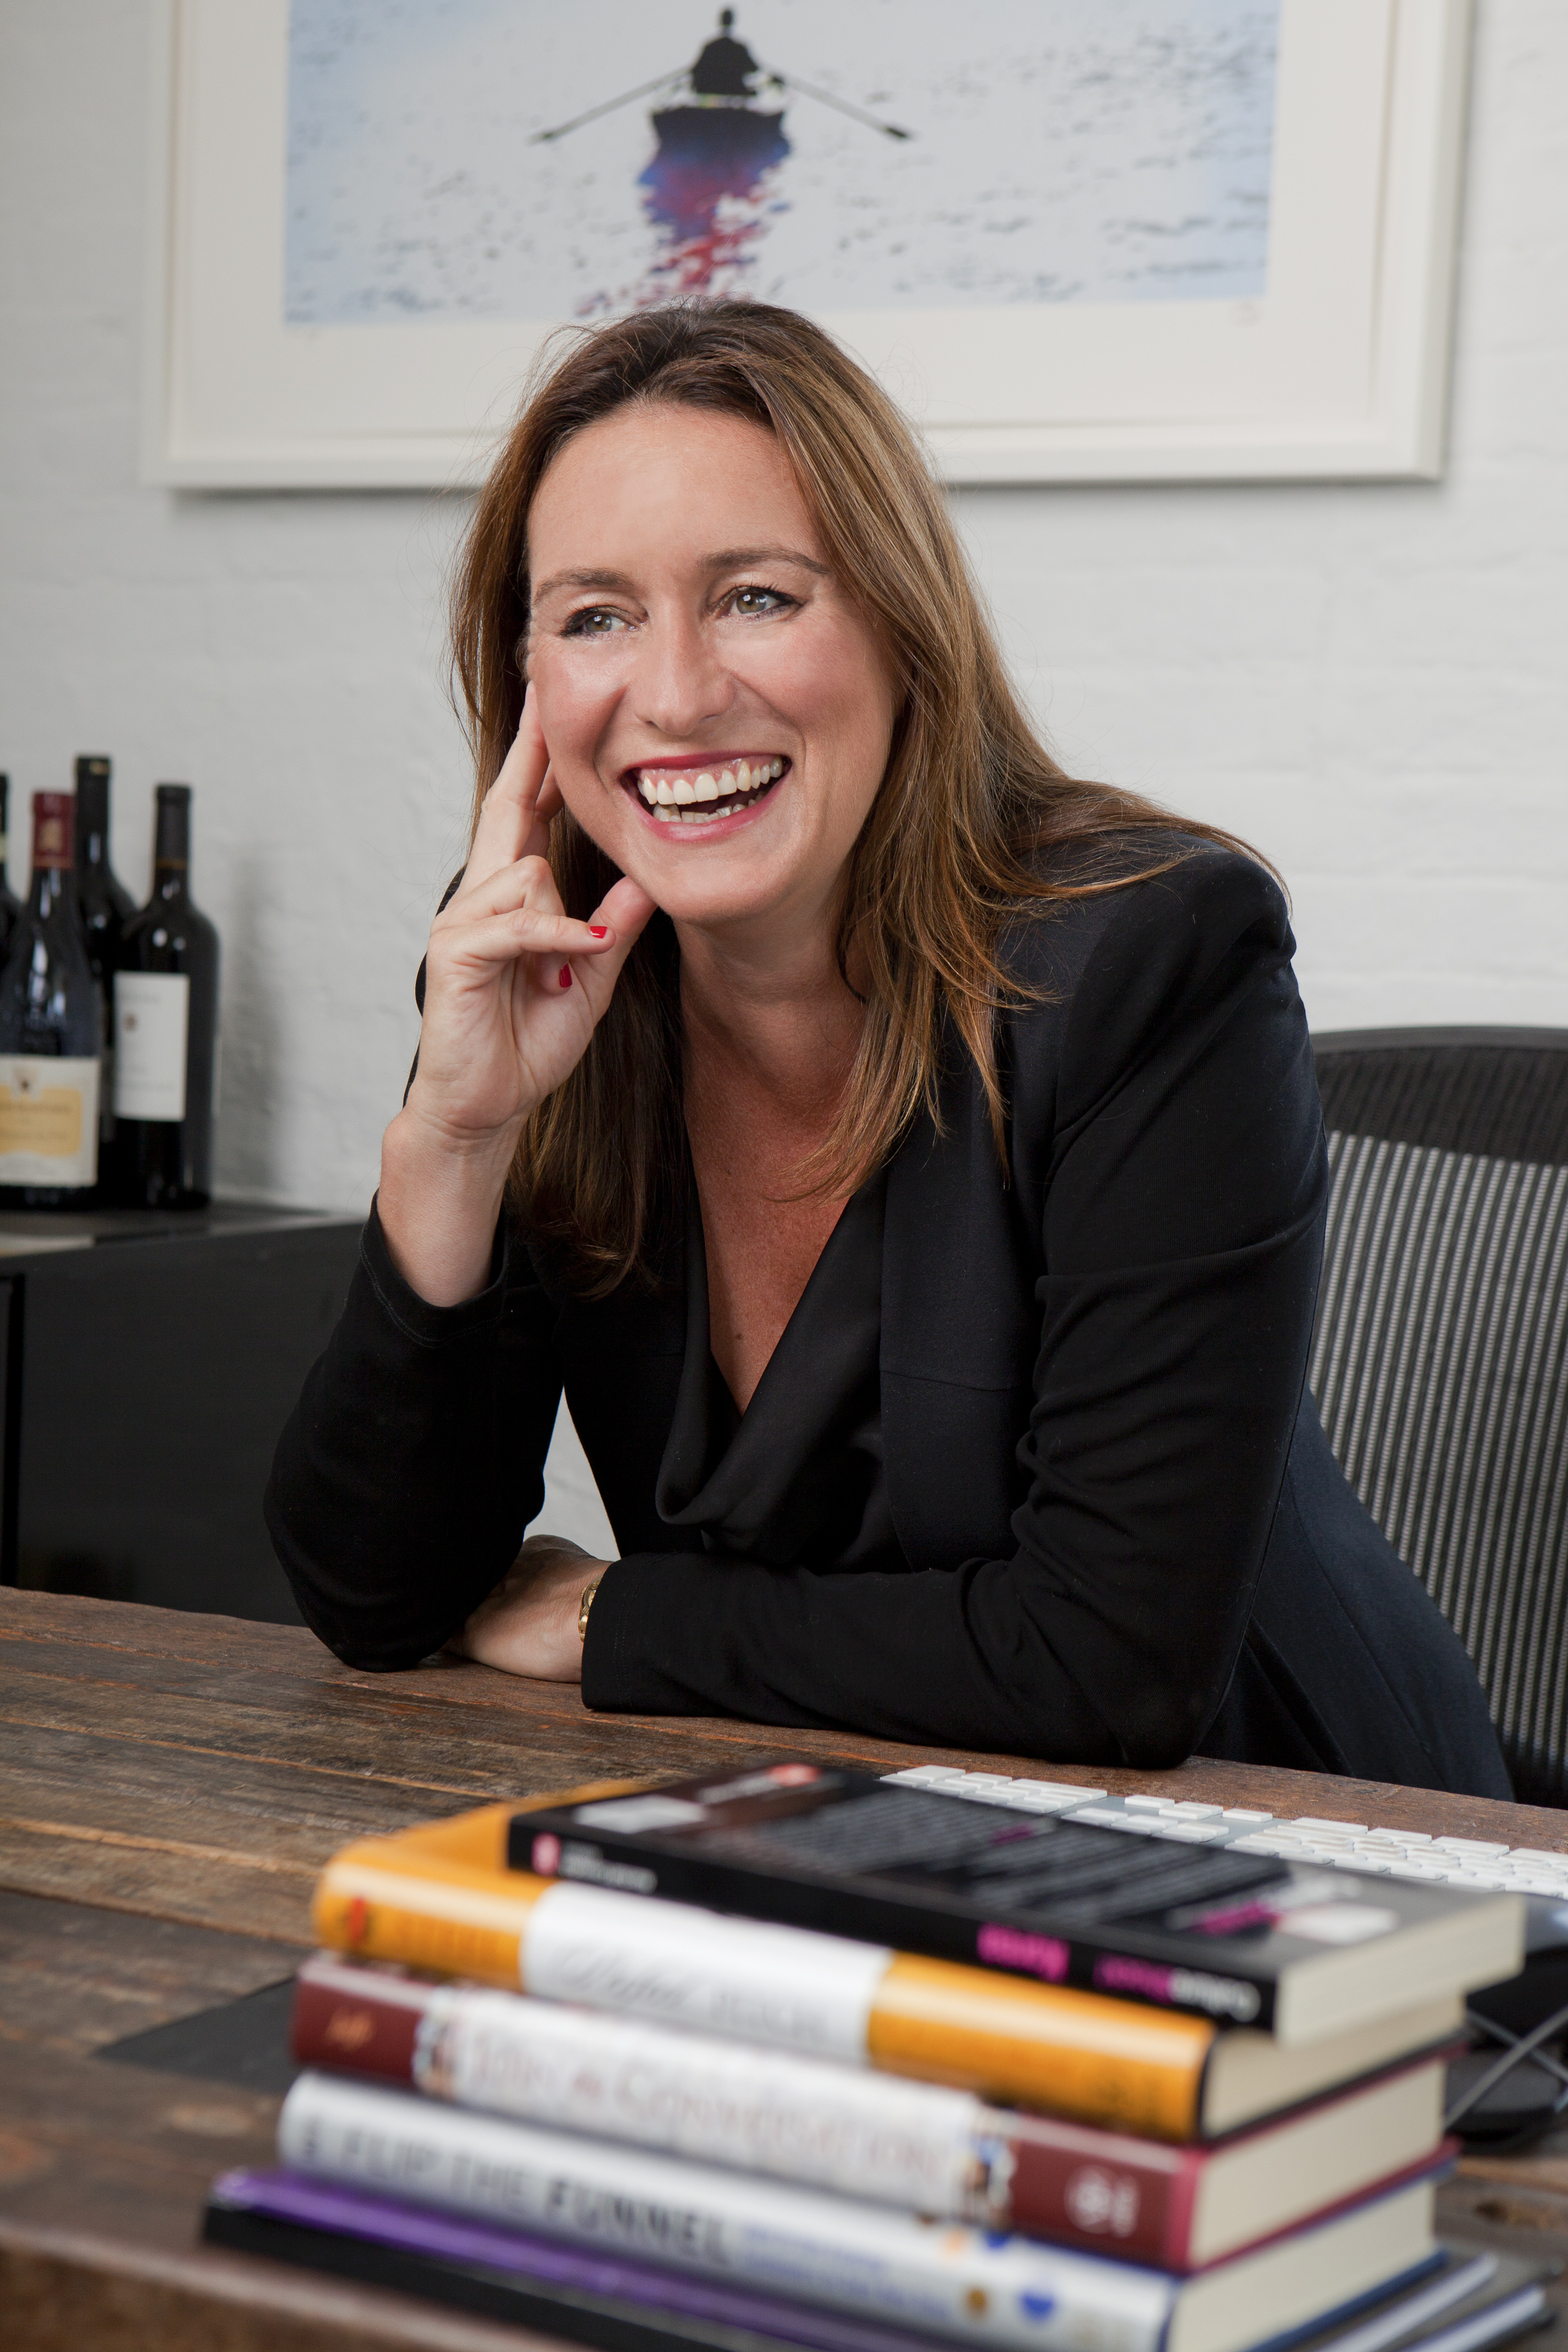 Sophie Kelly, CEO of The Barbarian Group